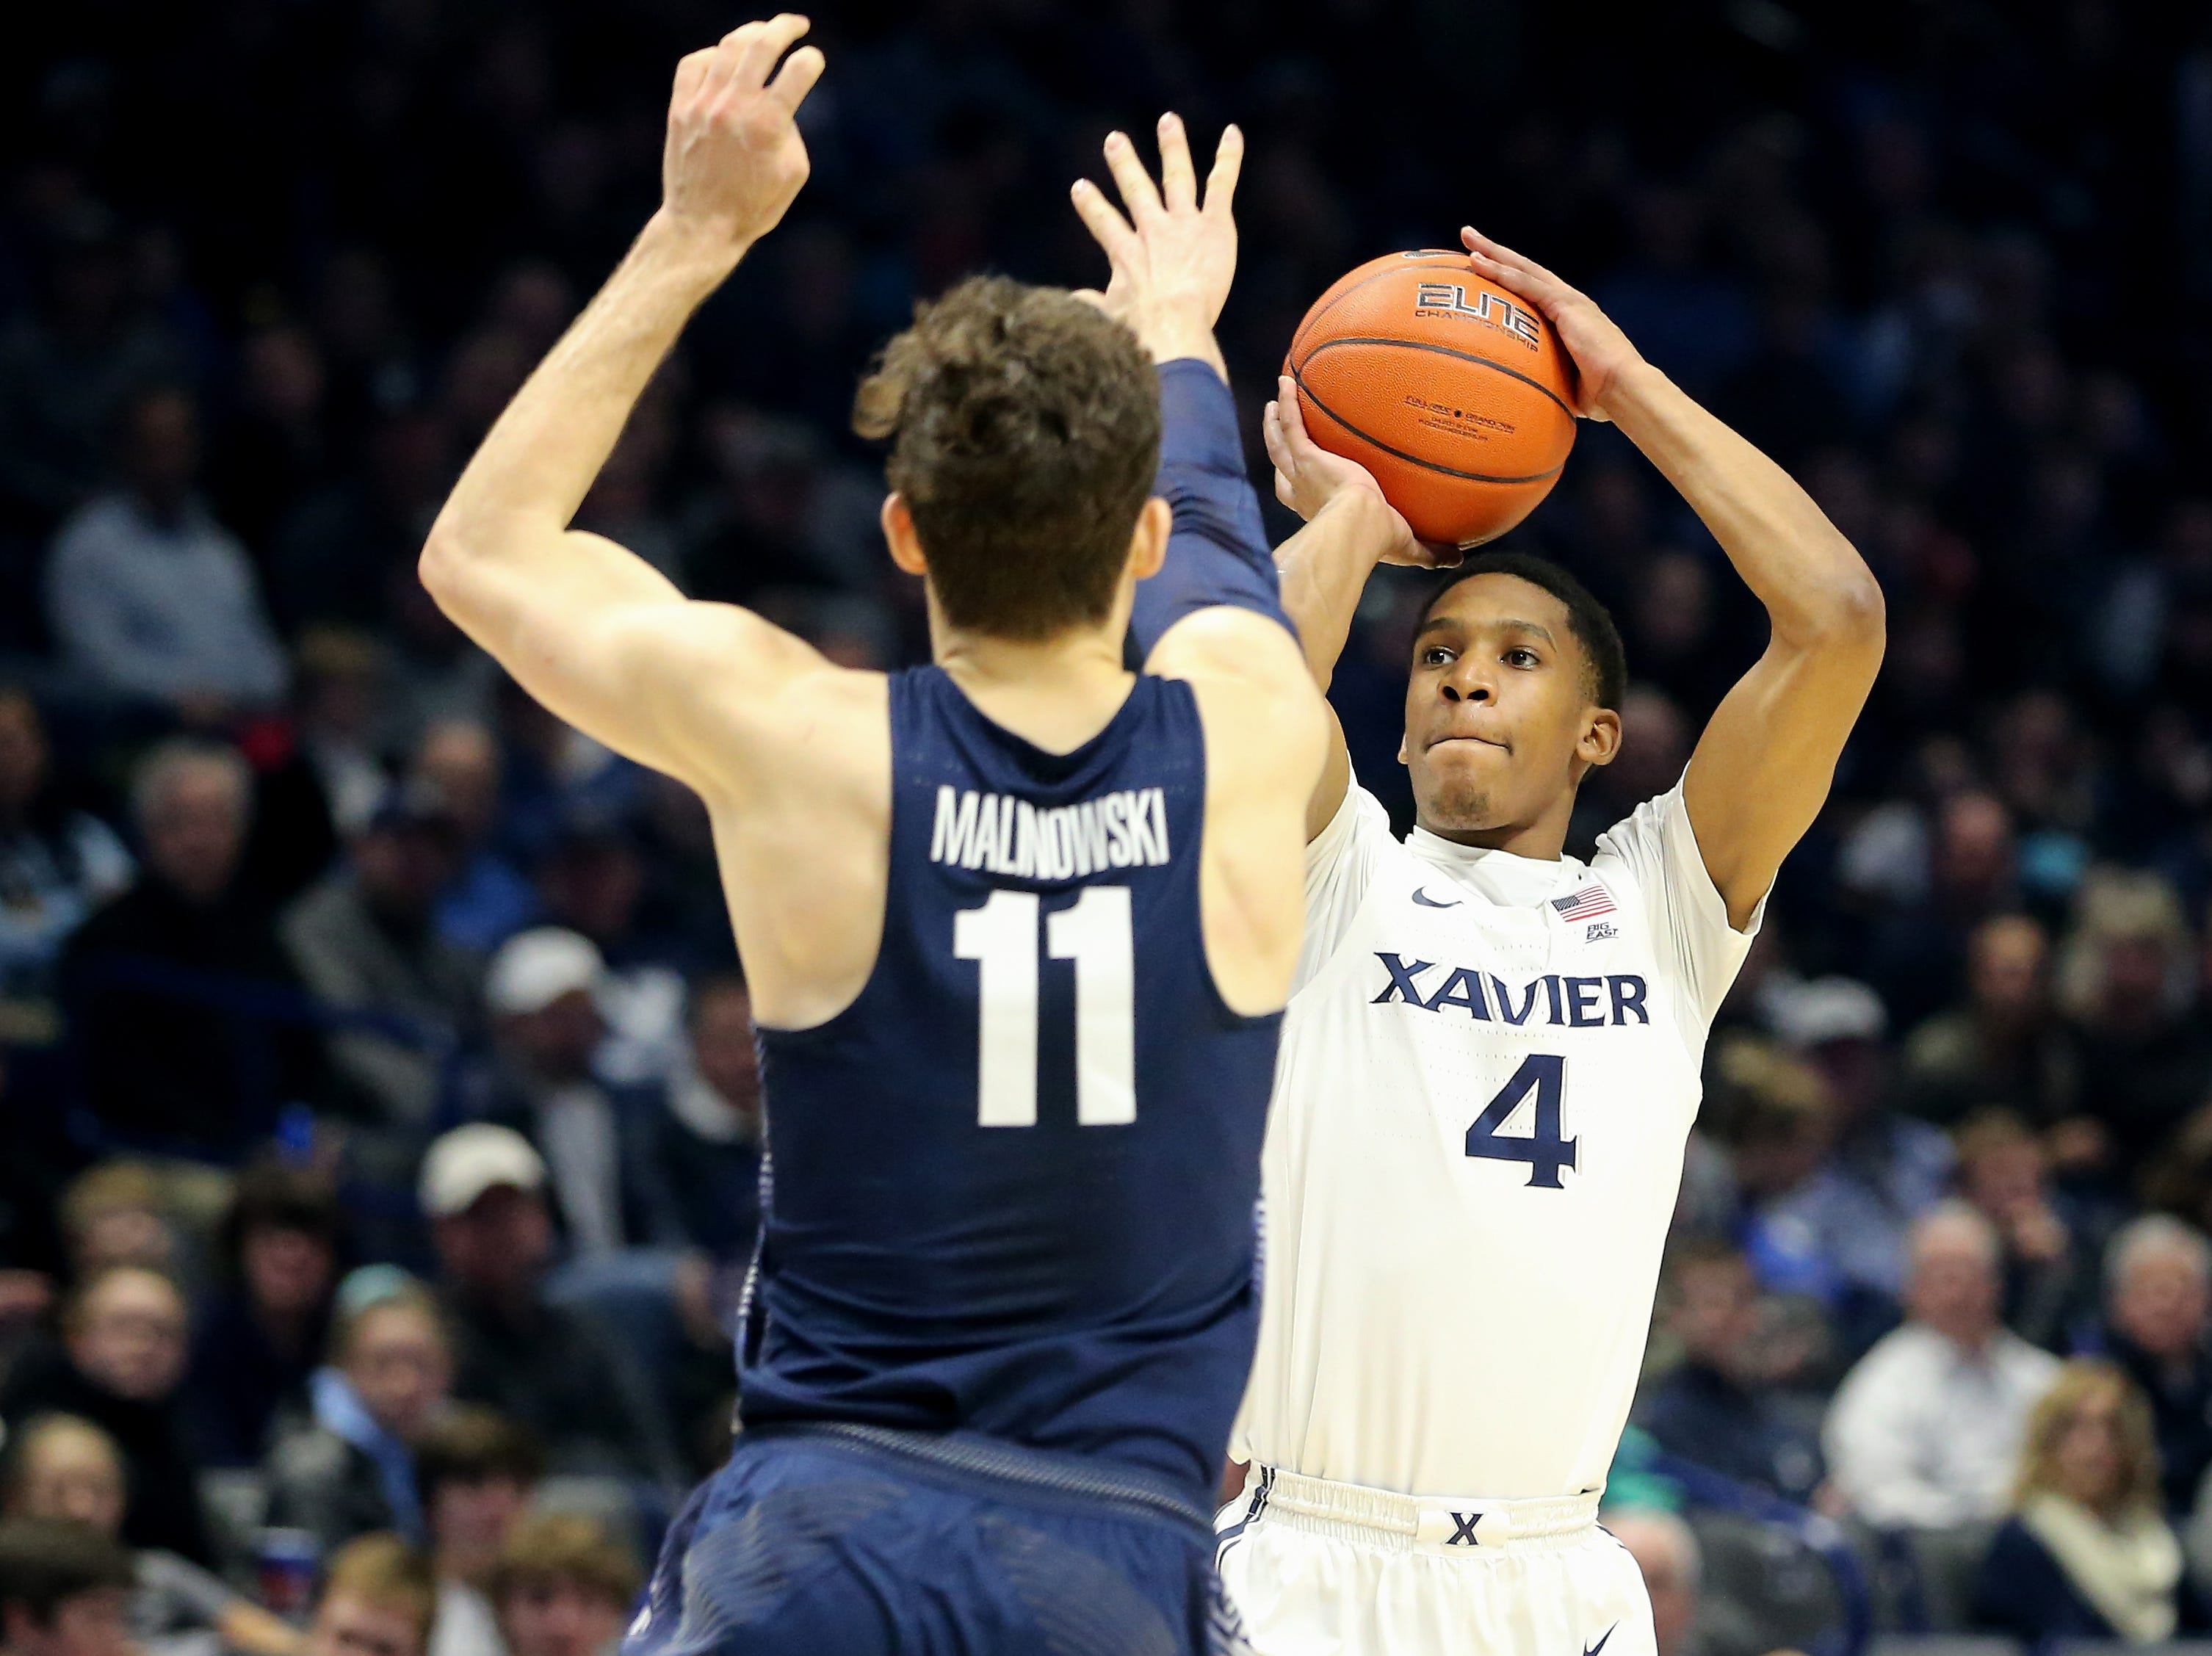 Xavier Musketeers guard Elias Harden (4) rises for a 3-point shot over Georgetown Hoyas guard Greg Malinowski (11) in the second half of an NCAA basketball game, Wednesday, Jan. 9, 2019, at the Cintas Center in Cincinnati. Xavier Musketeers won 81-75 against the Georgetown Hoyas.